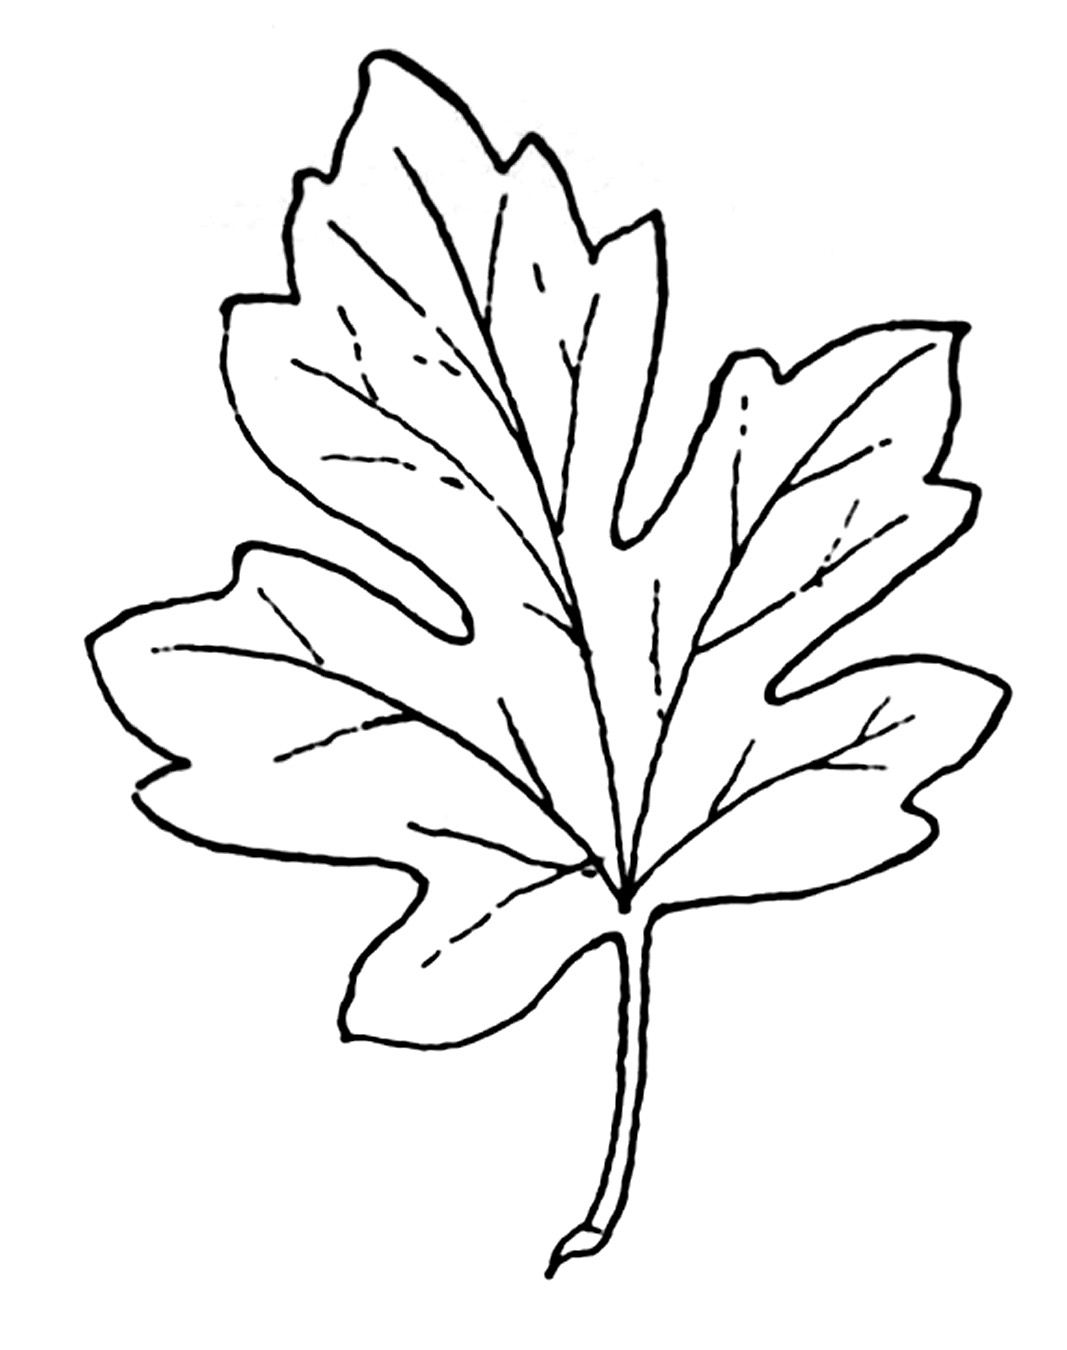 1067x1350 Autumn Leaves Clipart Black And White